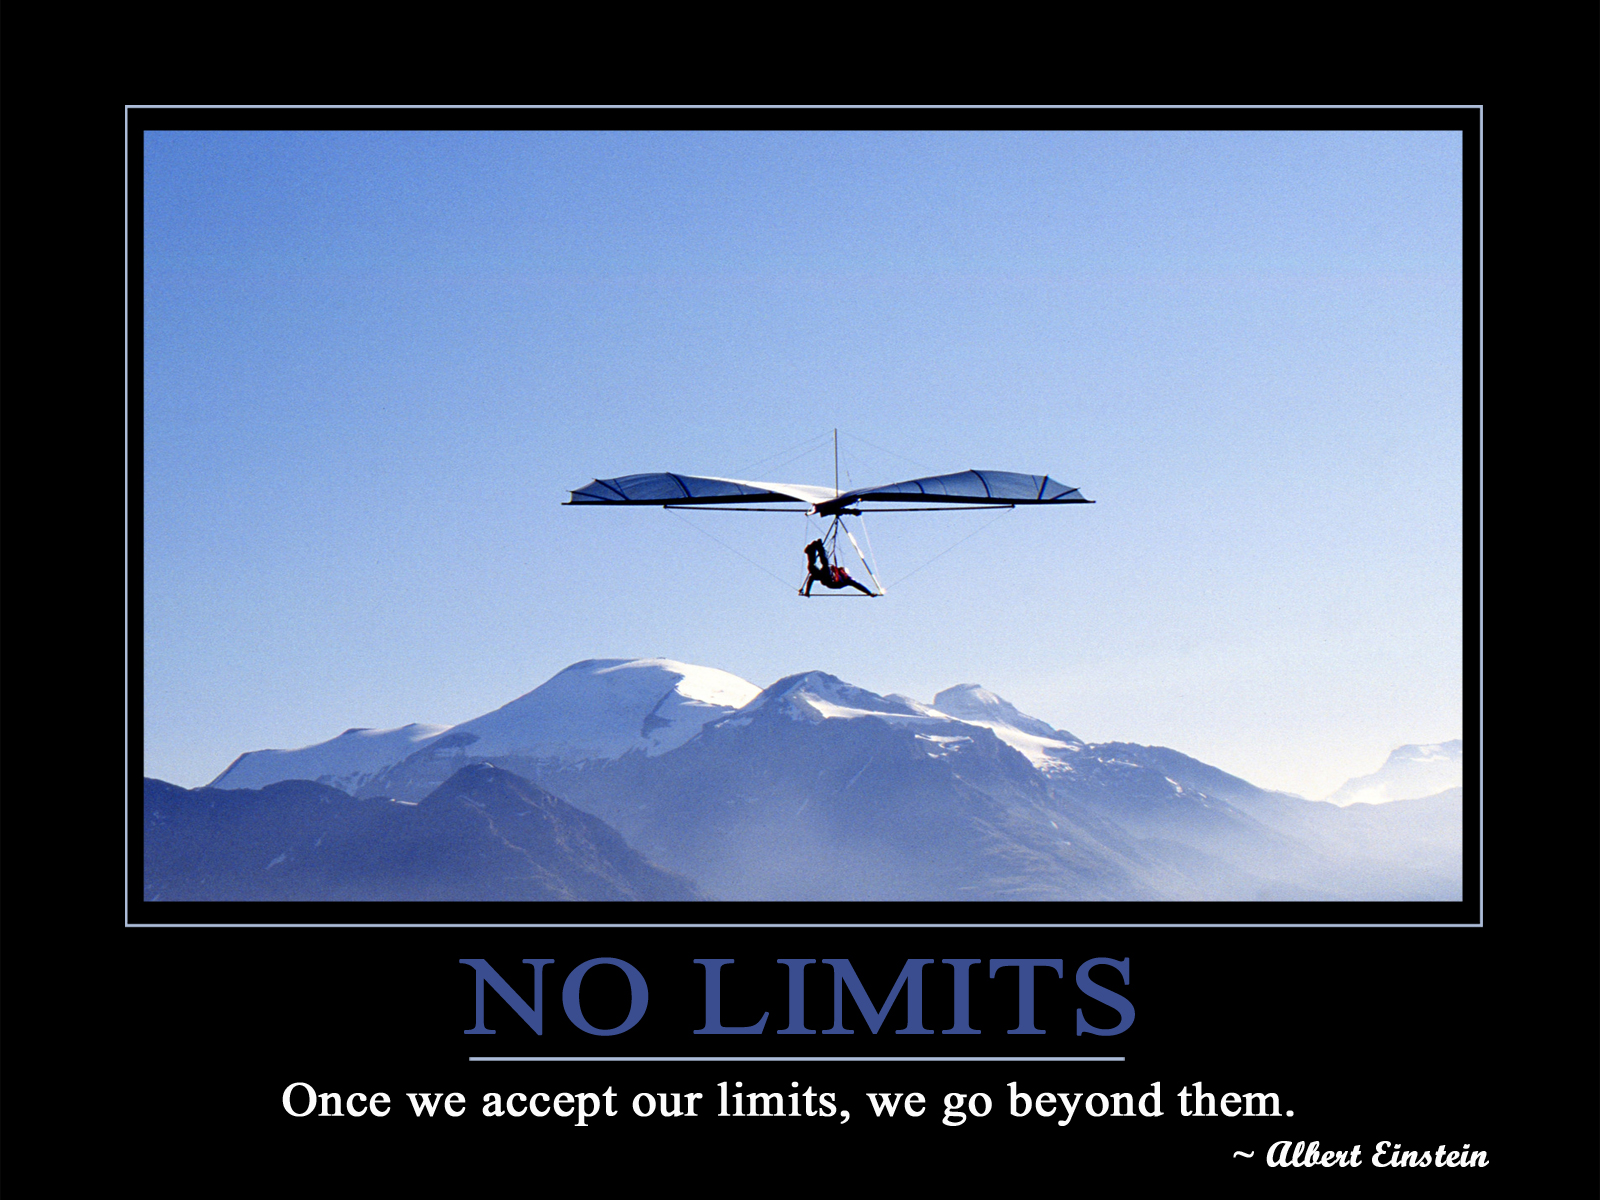 No Limits, Once We Accept Our Limits, We Go Beyond Them